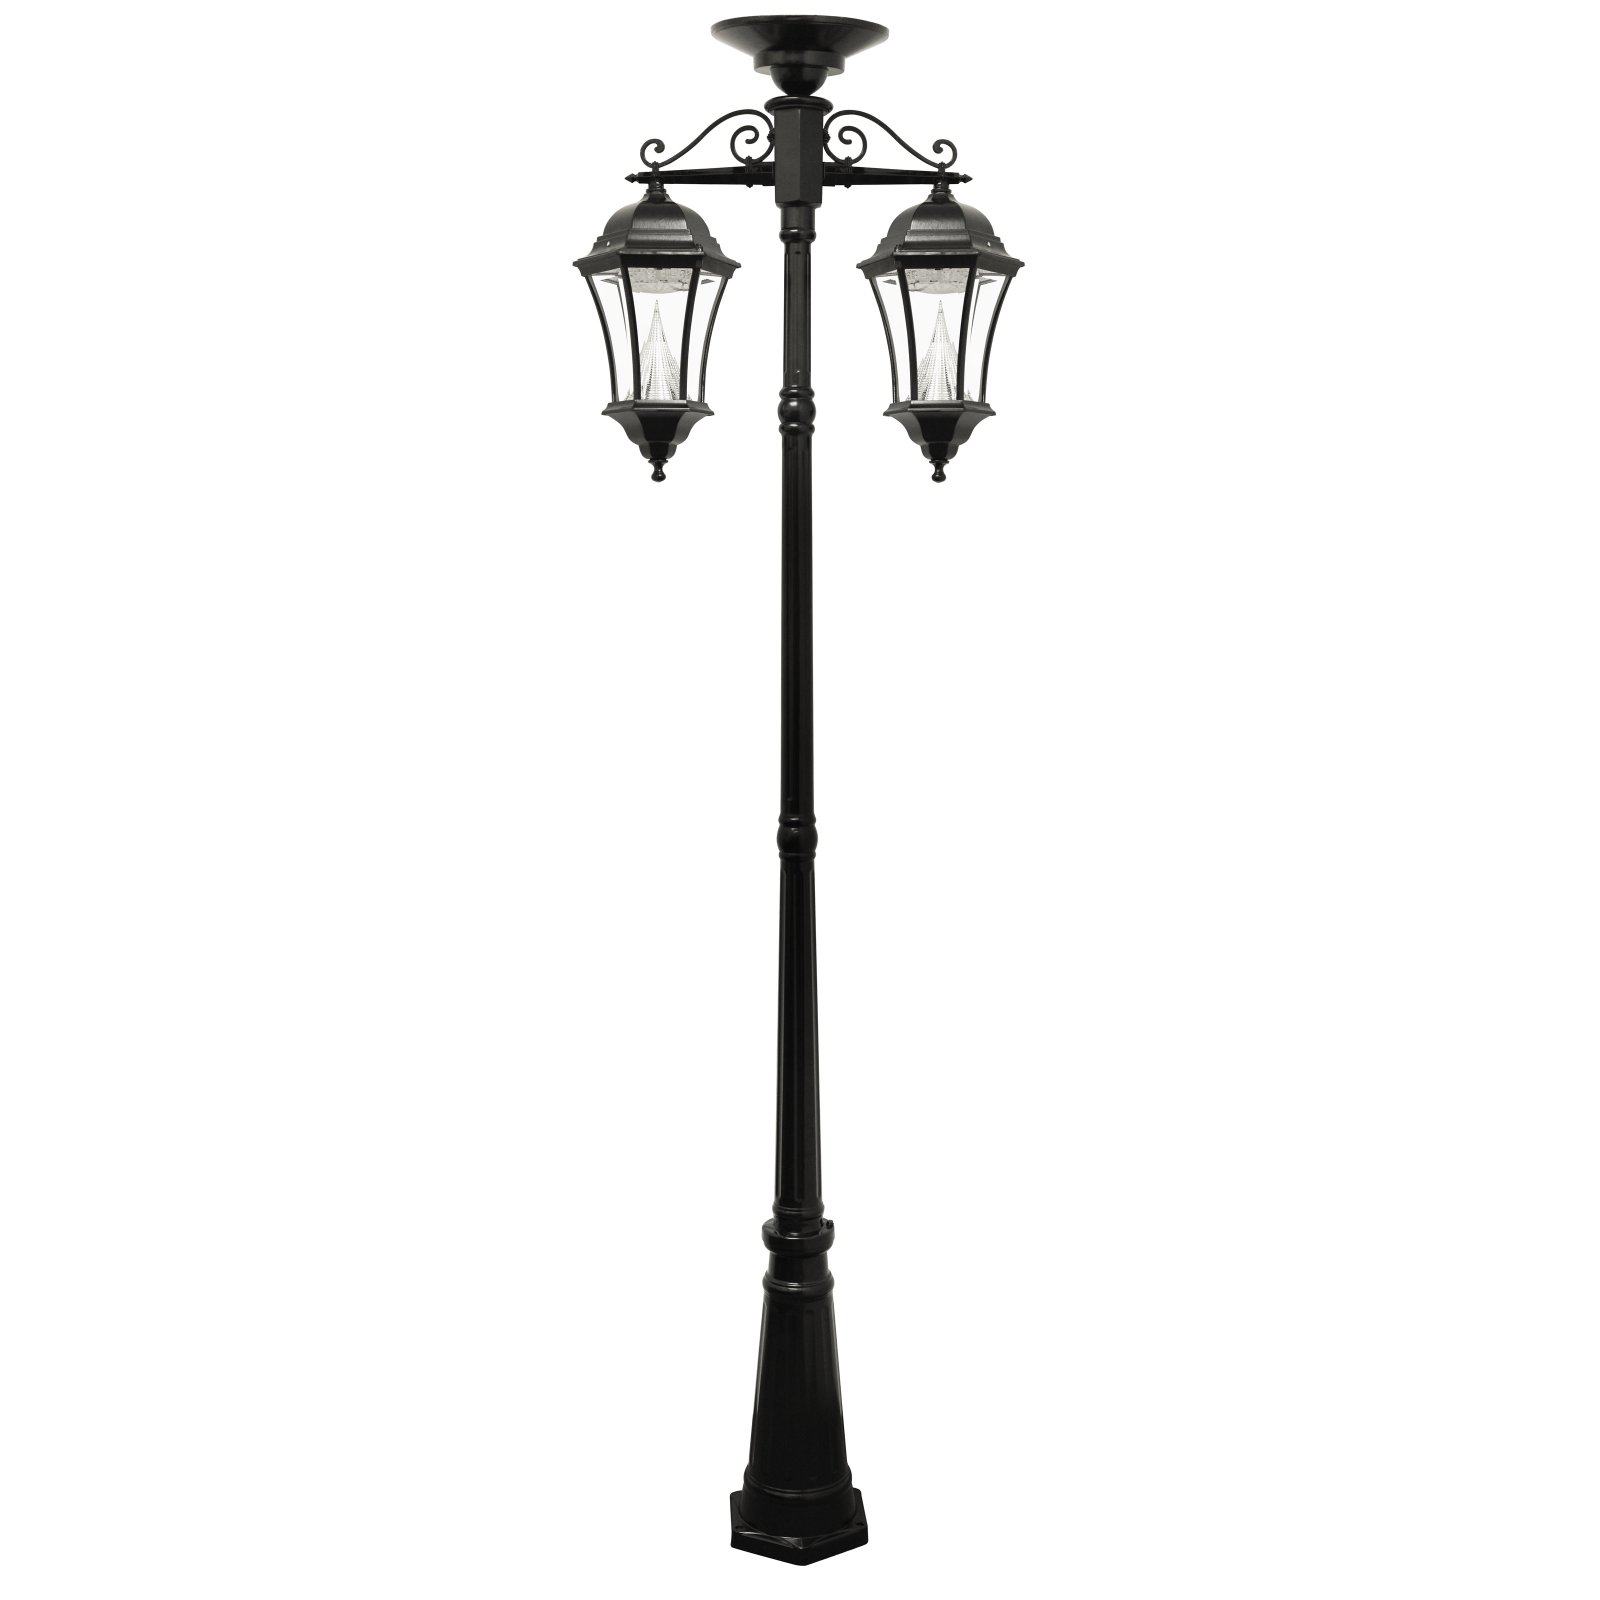 Solar Lamp Post Gama Sonic Victorian Solar Lamp Post Double Downward Hanging Led Lamps